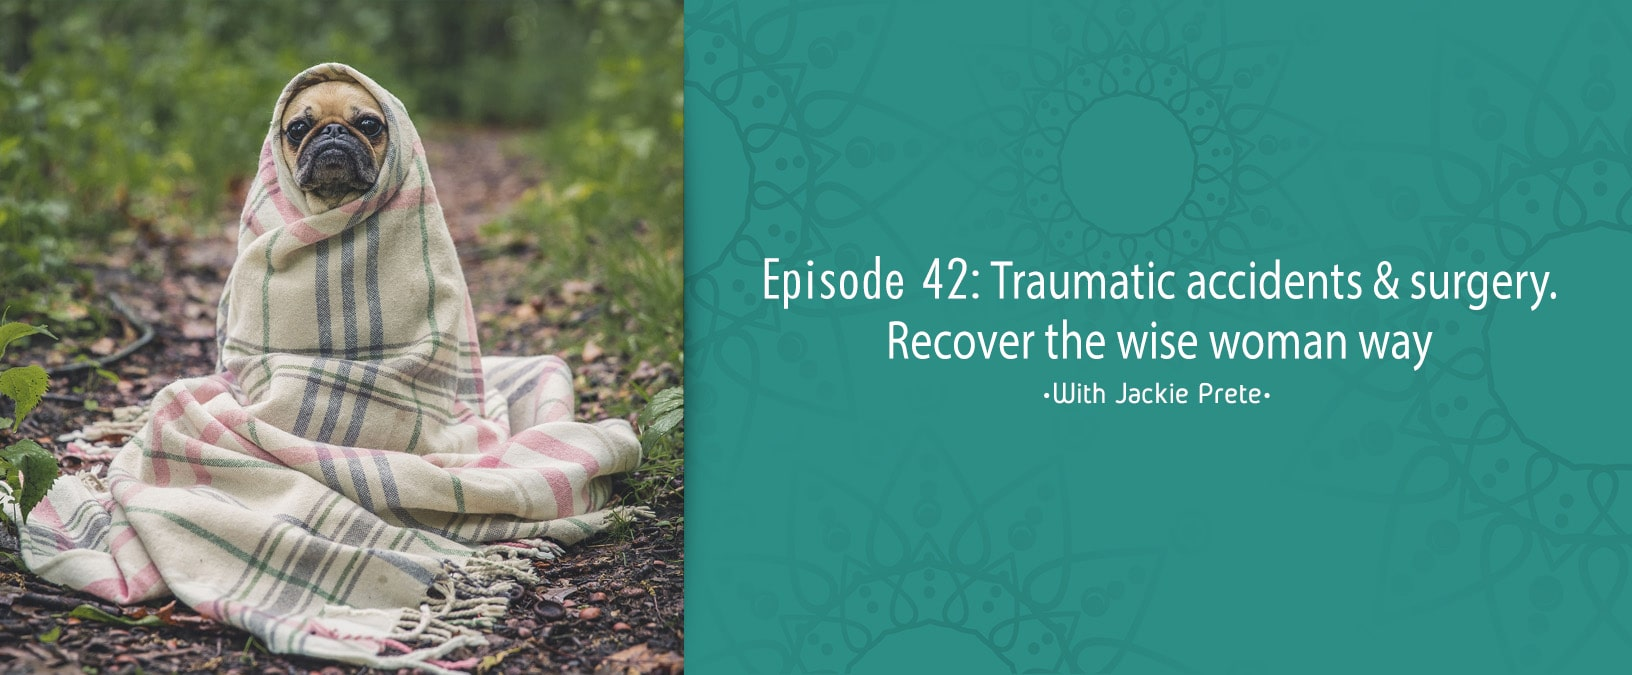 Traumatic Accidents & Surgery. Recover the wise woman way.